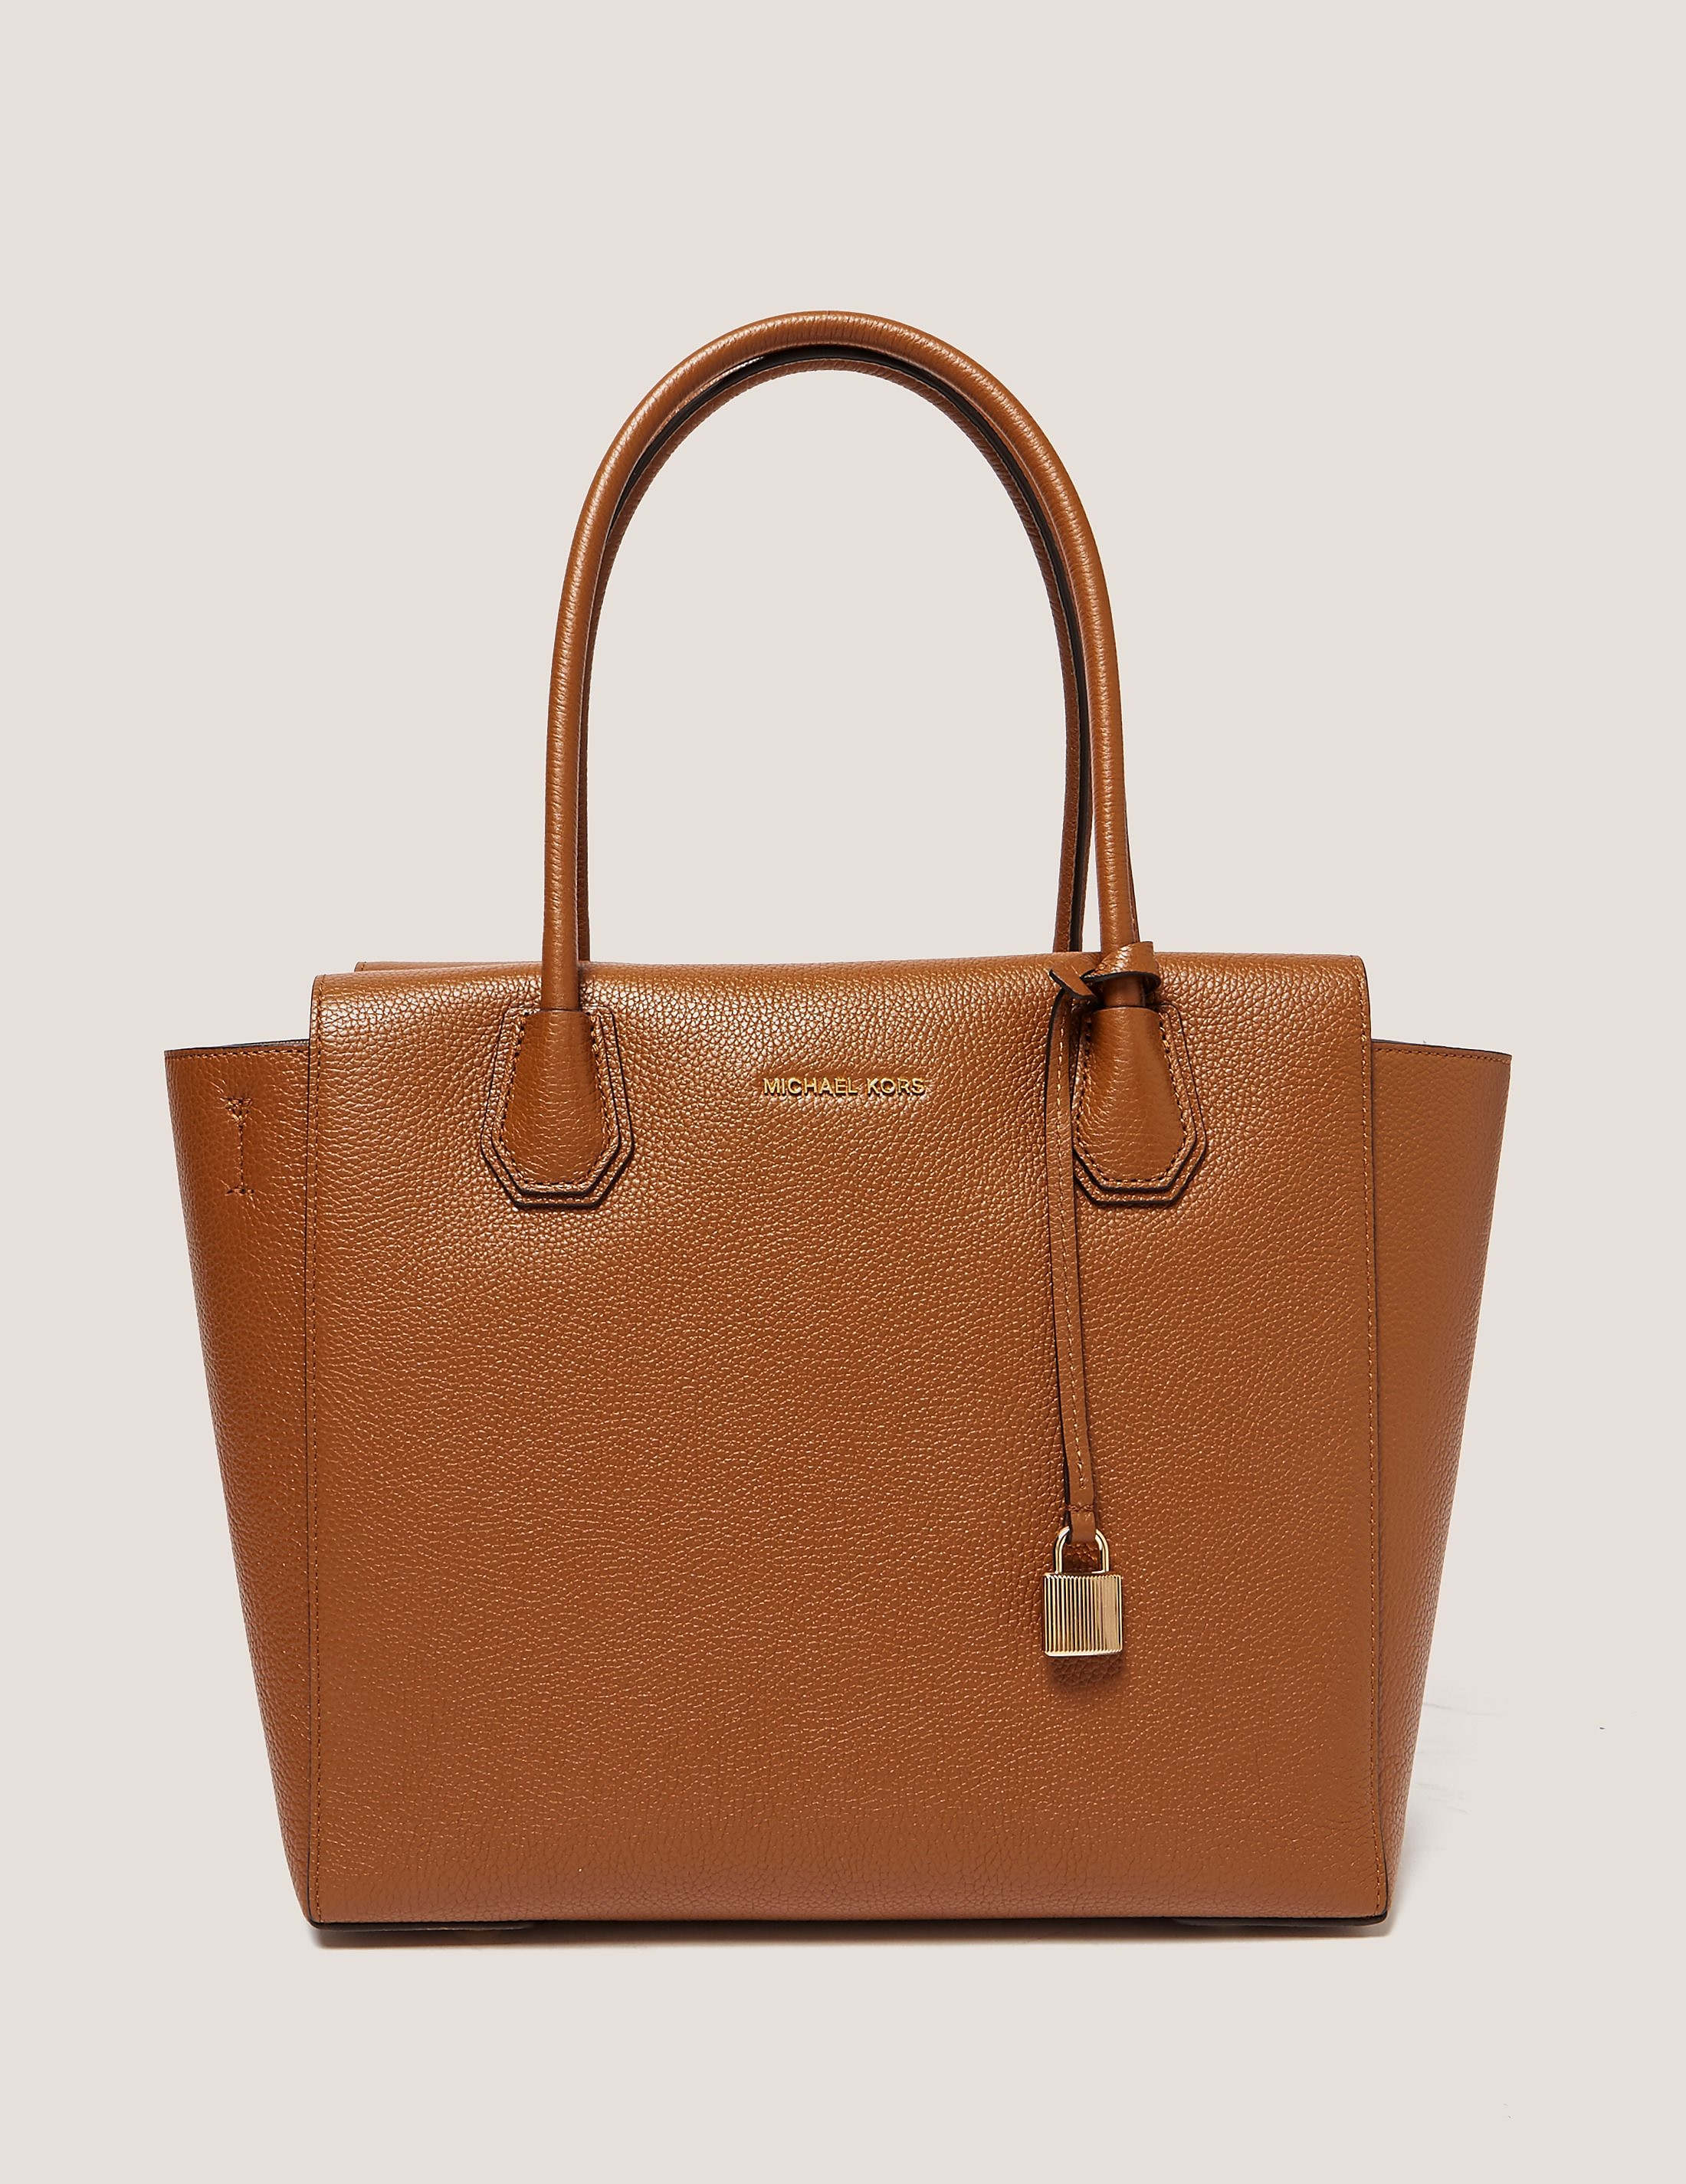 Michael Kors Mercer Large Satchel